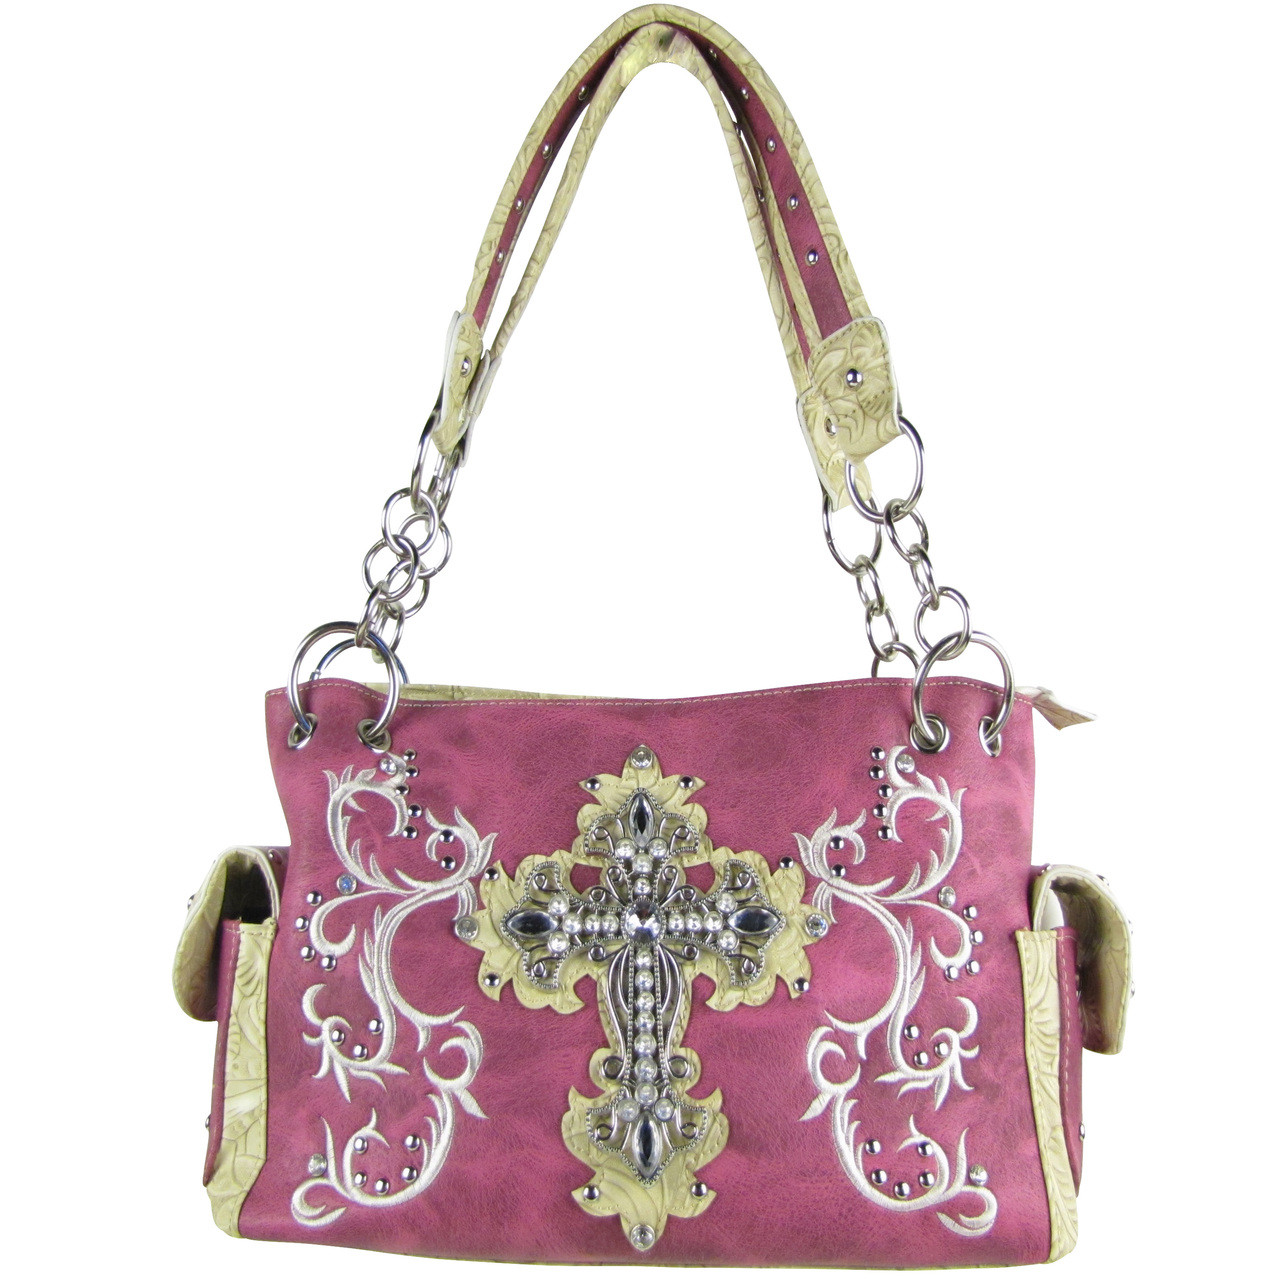 PURPLE RHINESTONE CROSS LOOK SHOULDER HANDBAG HB1-64LCRPPL